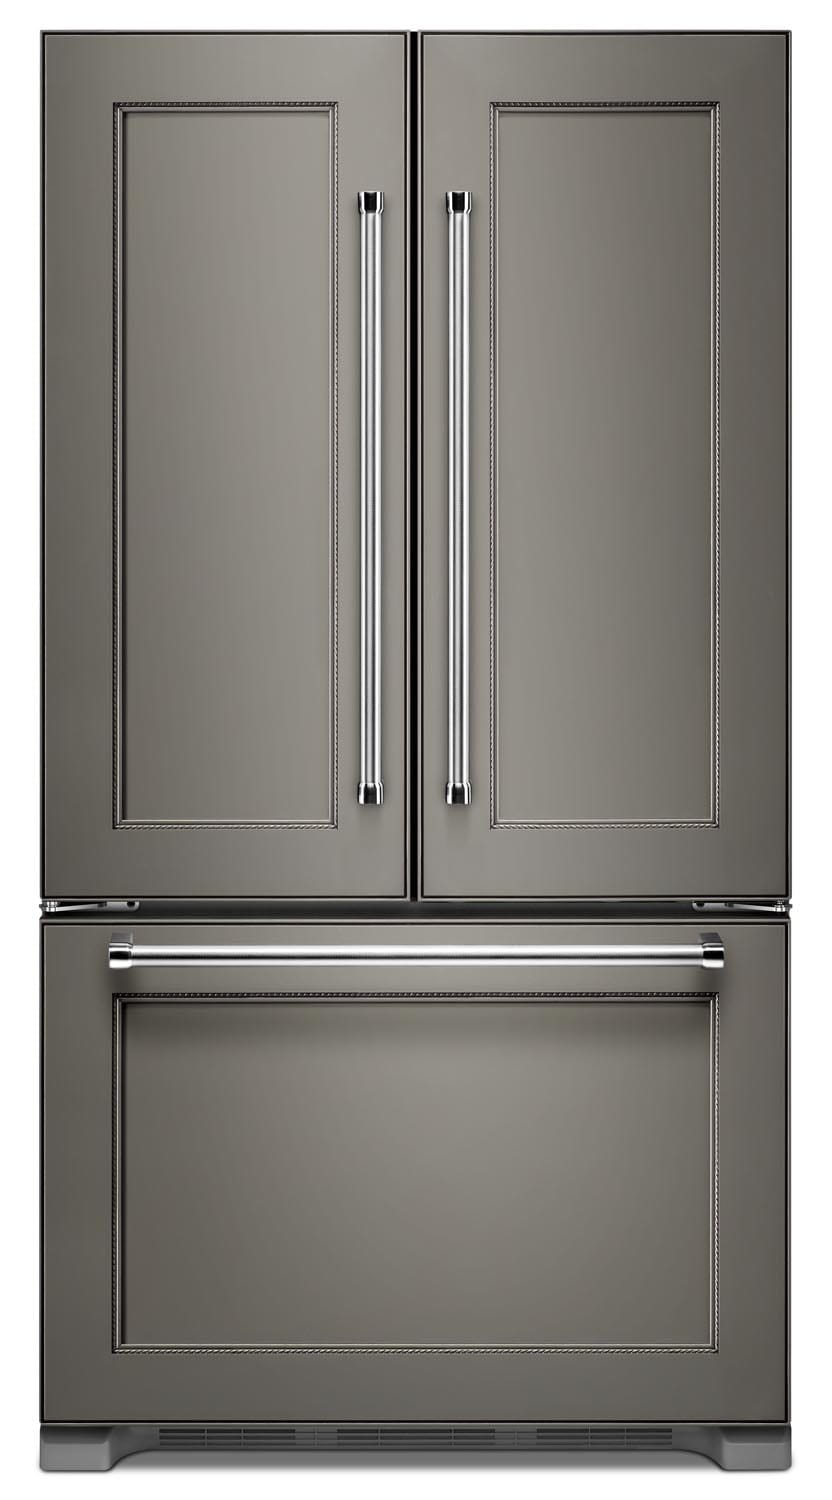 Kitchenaid Custom Panel Ready French Door Refrigerator 20